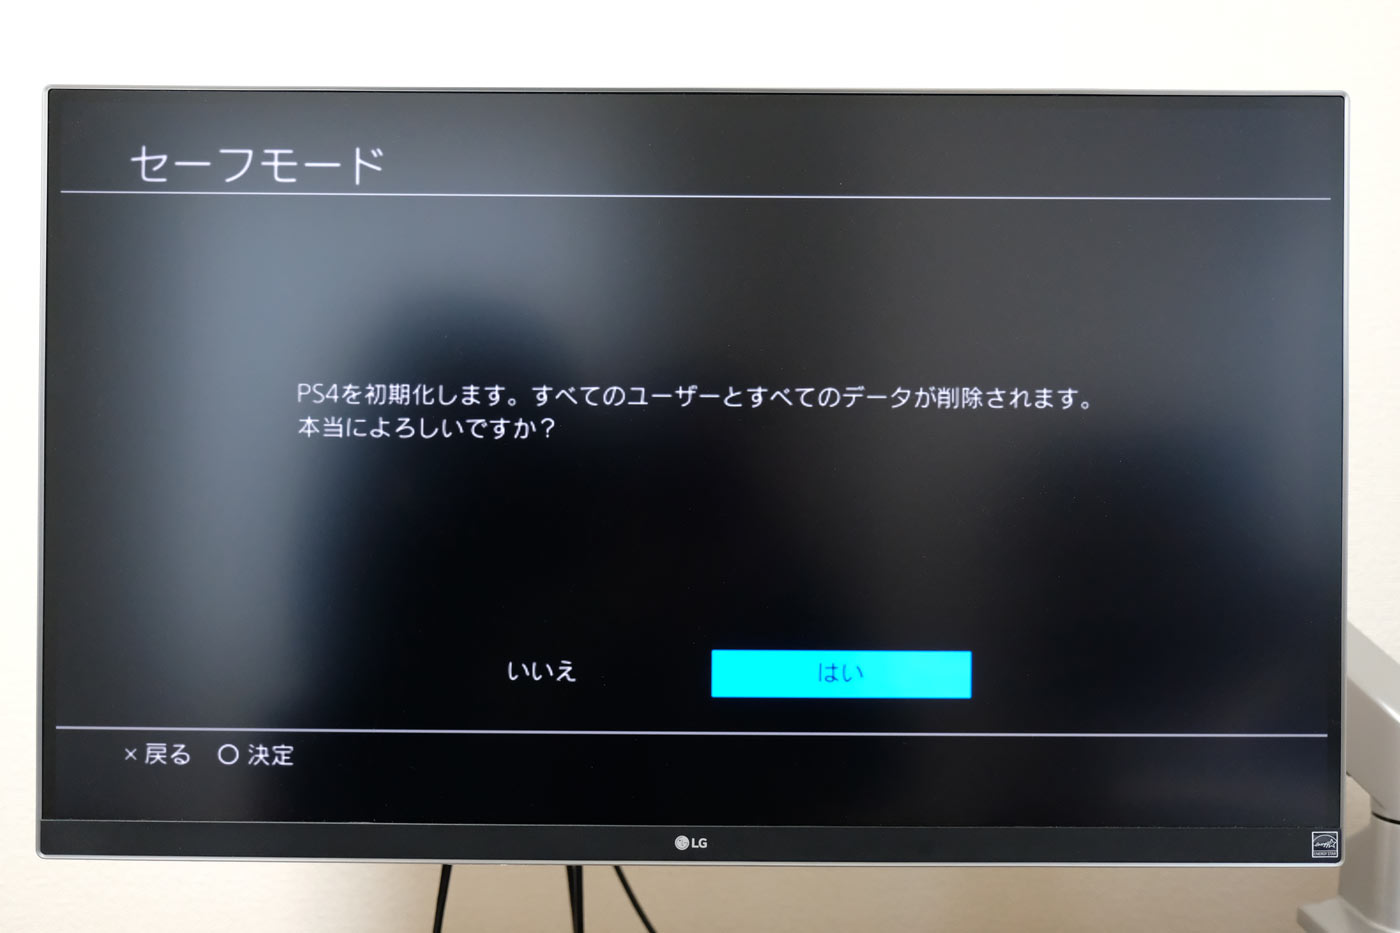 PS4を初期化する